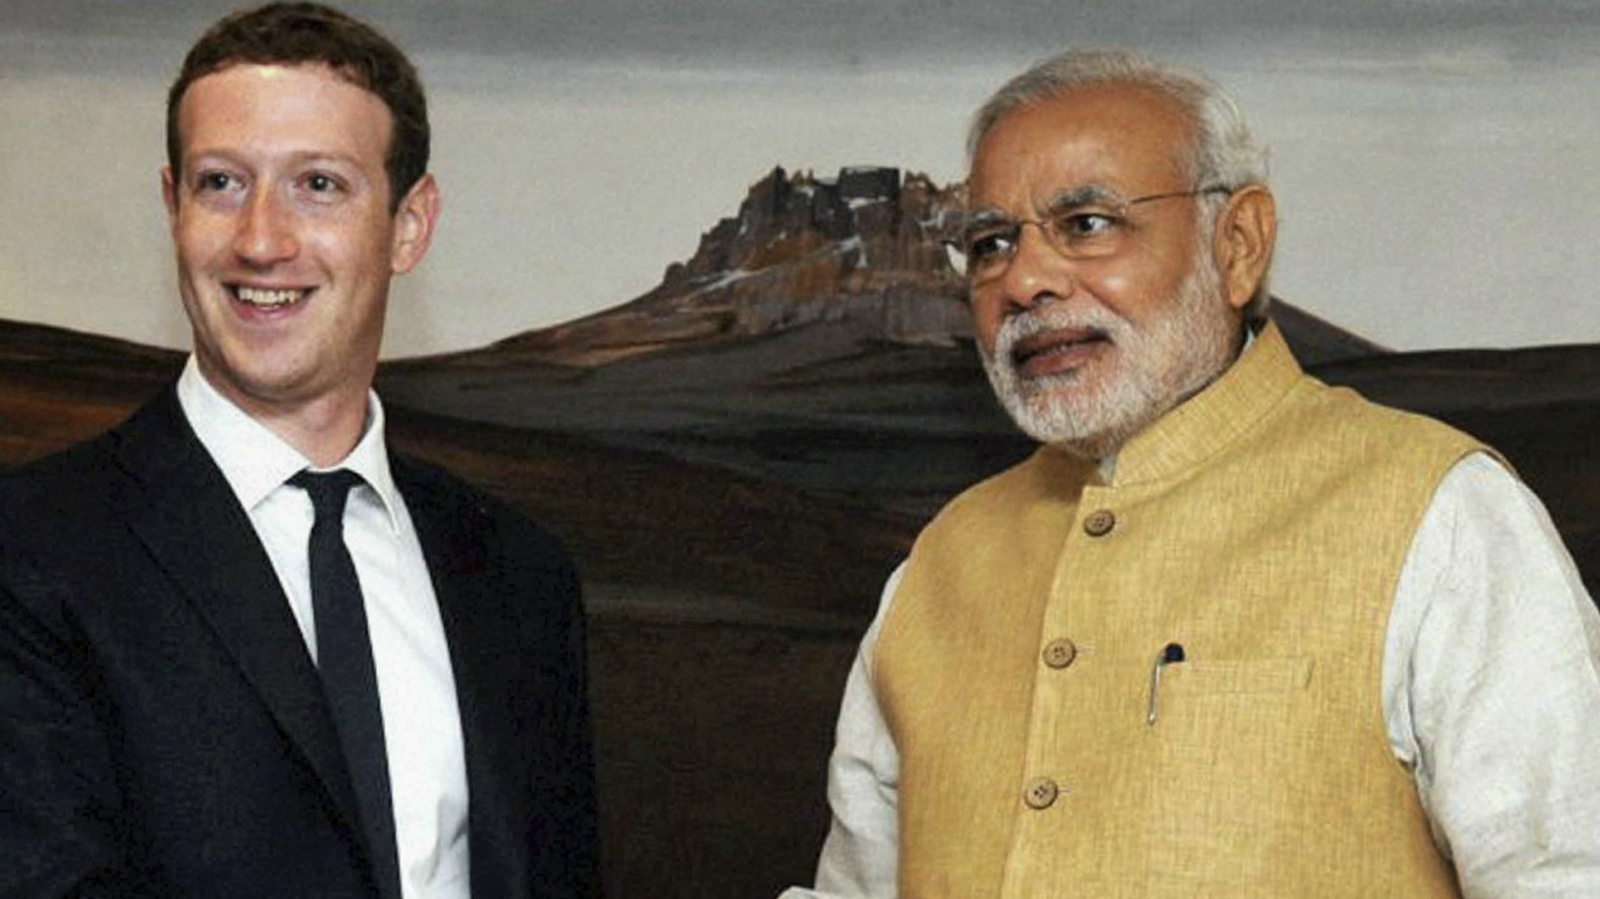 Indian Prime Minister Narendra Modi, right, shakes hands with Facebook CEO Mark Zuckerberg during a meeting in New Delhi, India, Friday, Oct. 10, 2014.